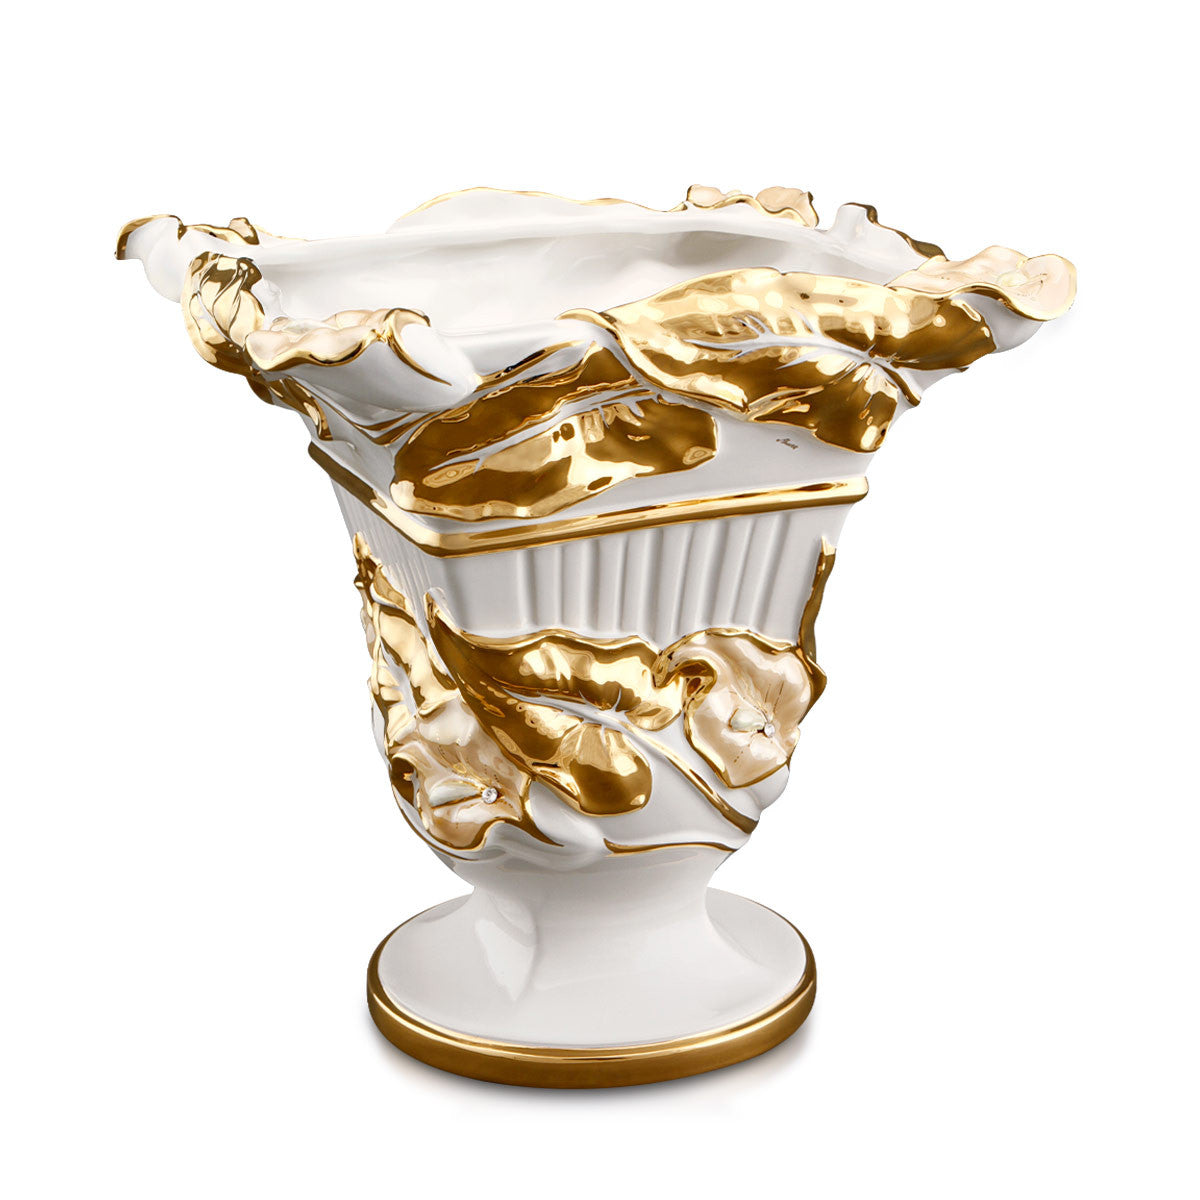 ceramic porcelain centerpiece finished in pure gold and salmon luster handmade in Italy